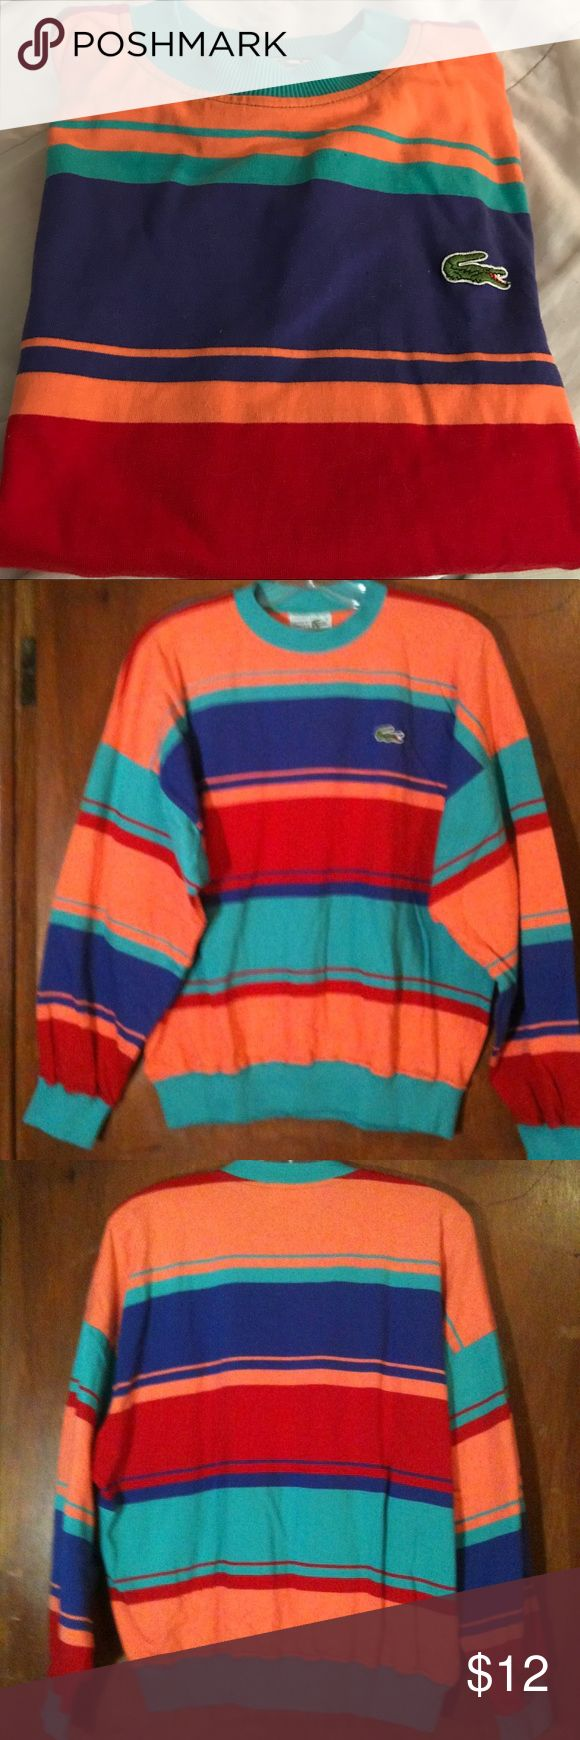 Men's Pullover Shirt Pullover Shirt for Men, if you love bright colors, this is the shirt for you. Multicolored stripes, Large, excellent condition Chemise Shirts